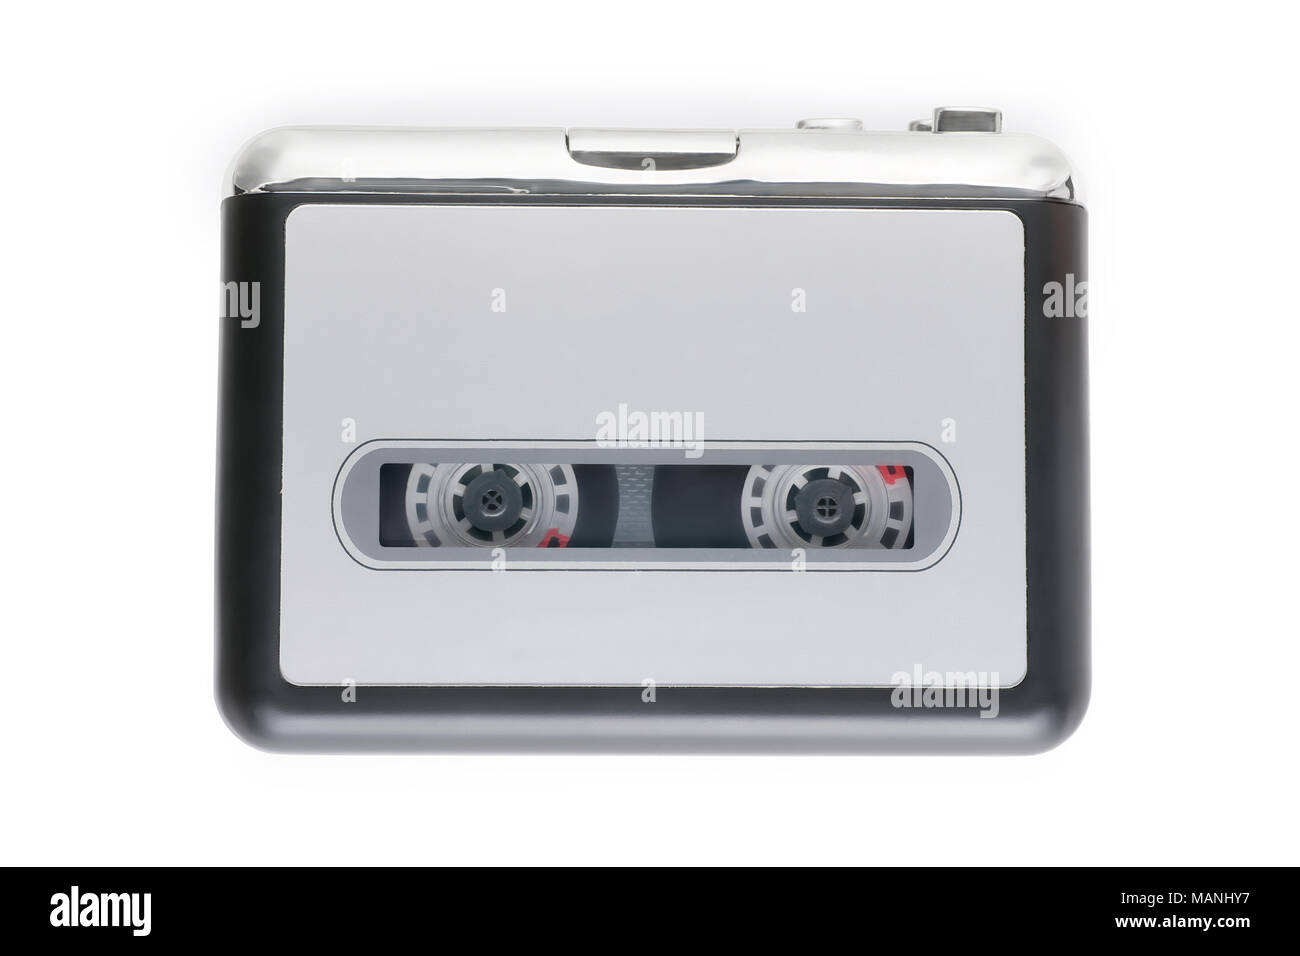 Small cassette player with a tape cassette inside. Isolated on white, clipping path included - Stock Image